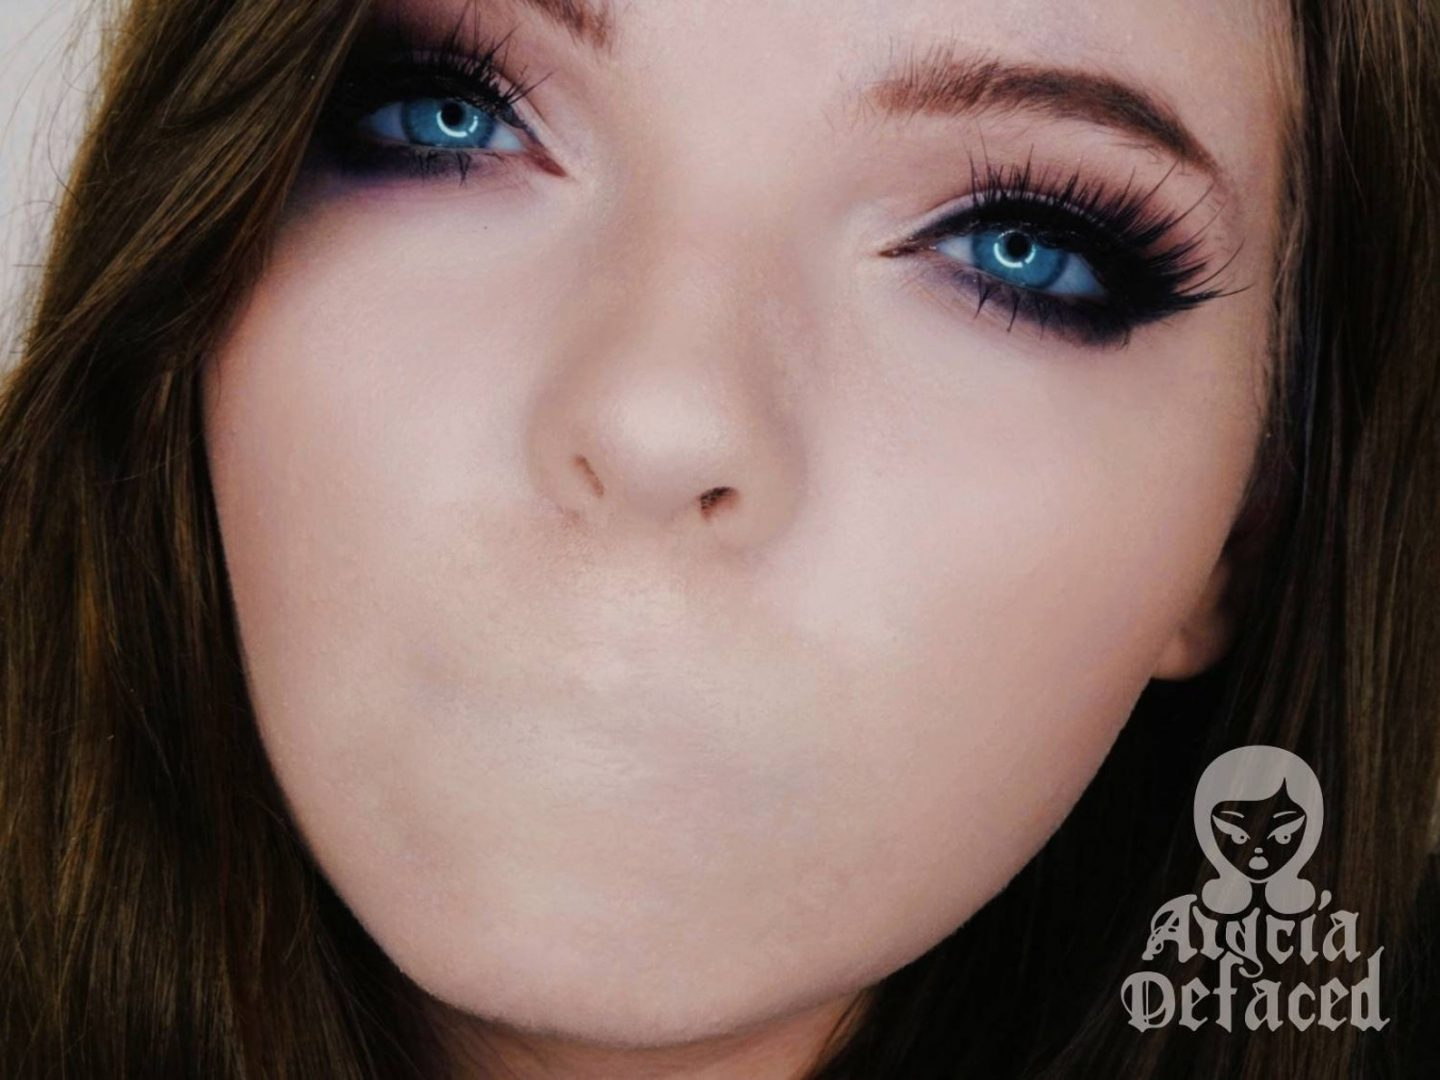 Scary mouthless Halloween makeup look